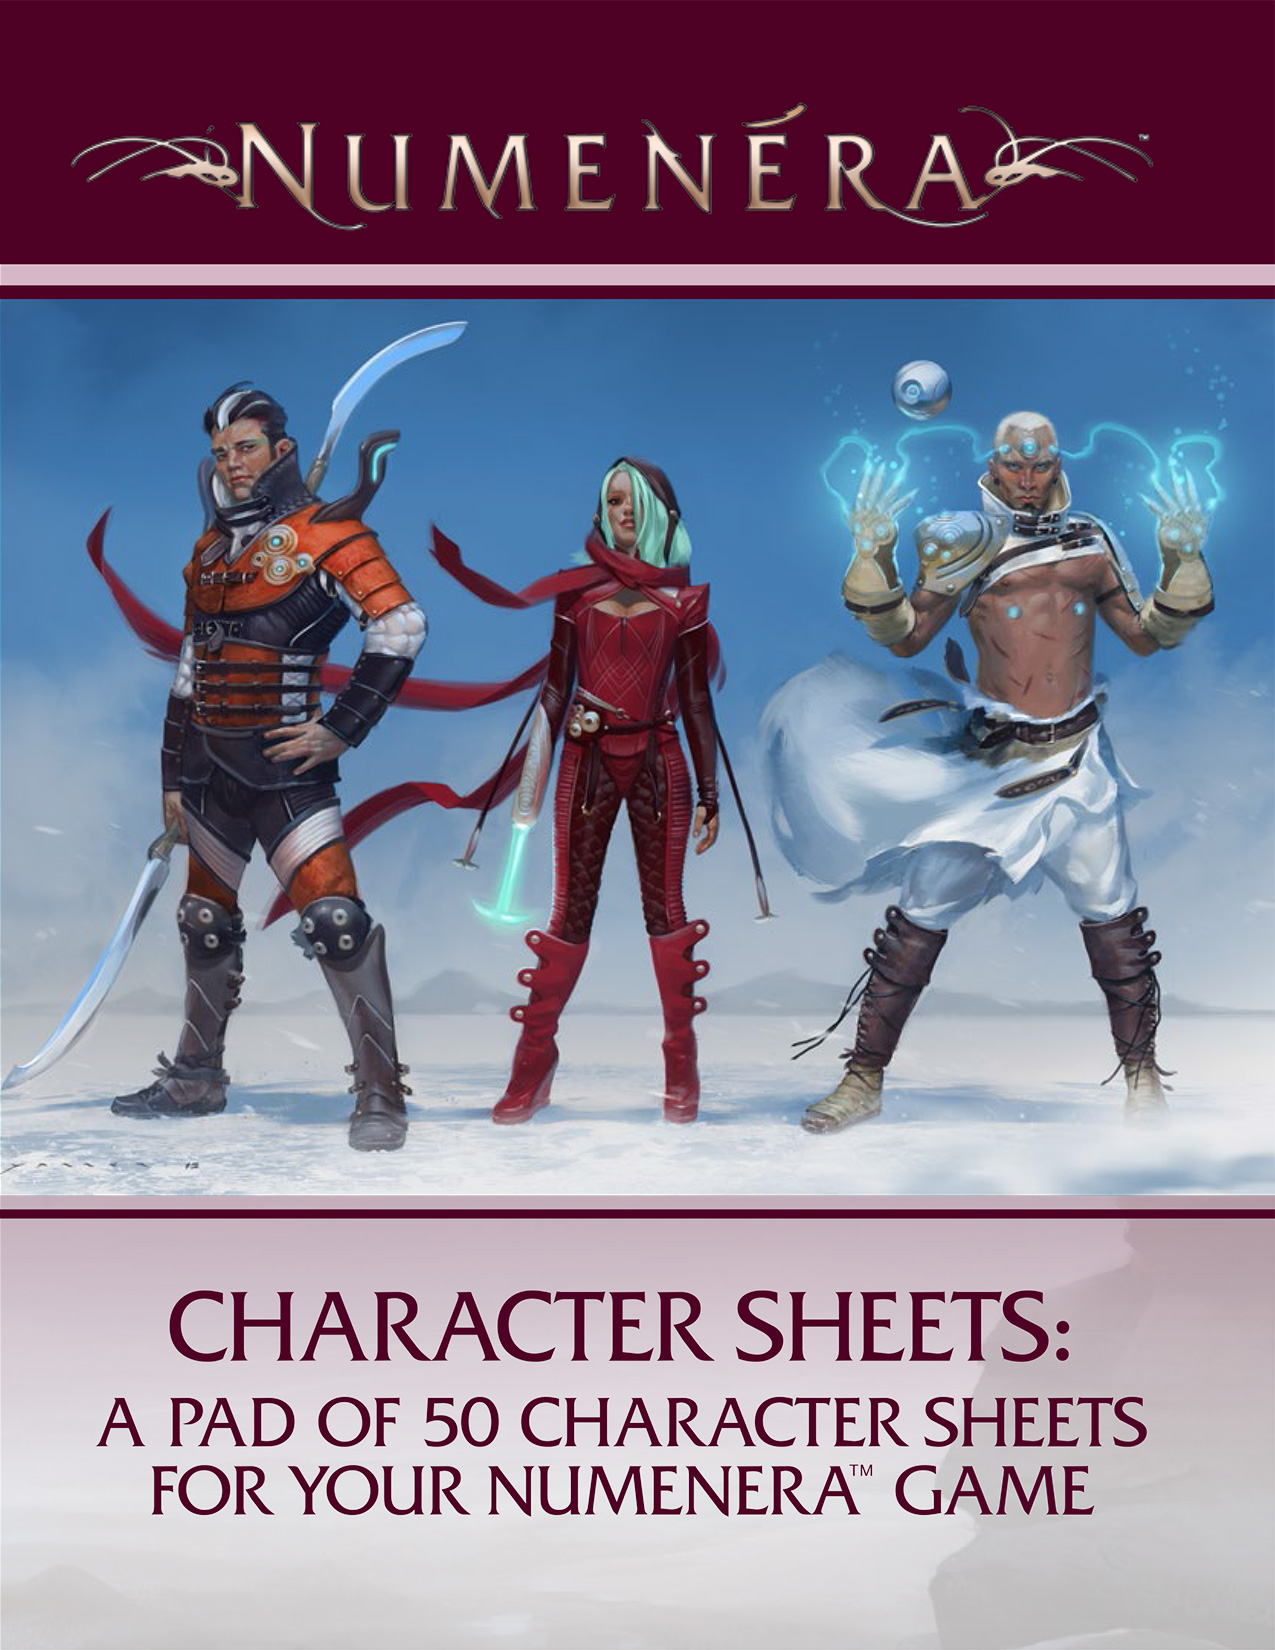 numenera character sheets 2014 02 24 - Picture Sheets